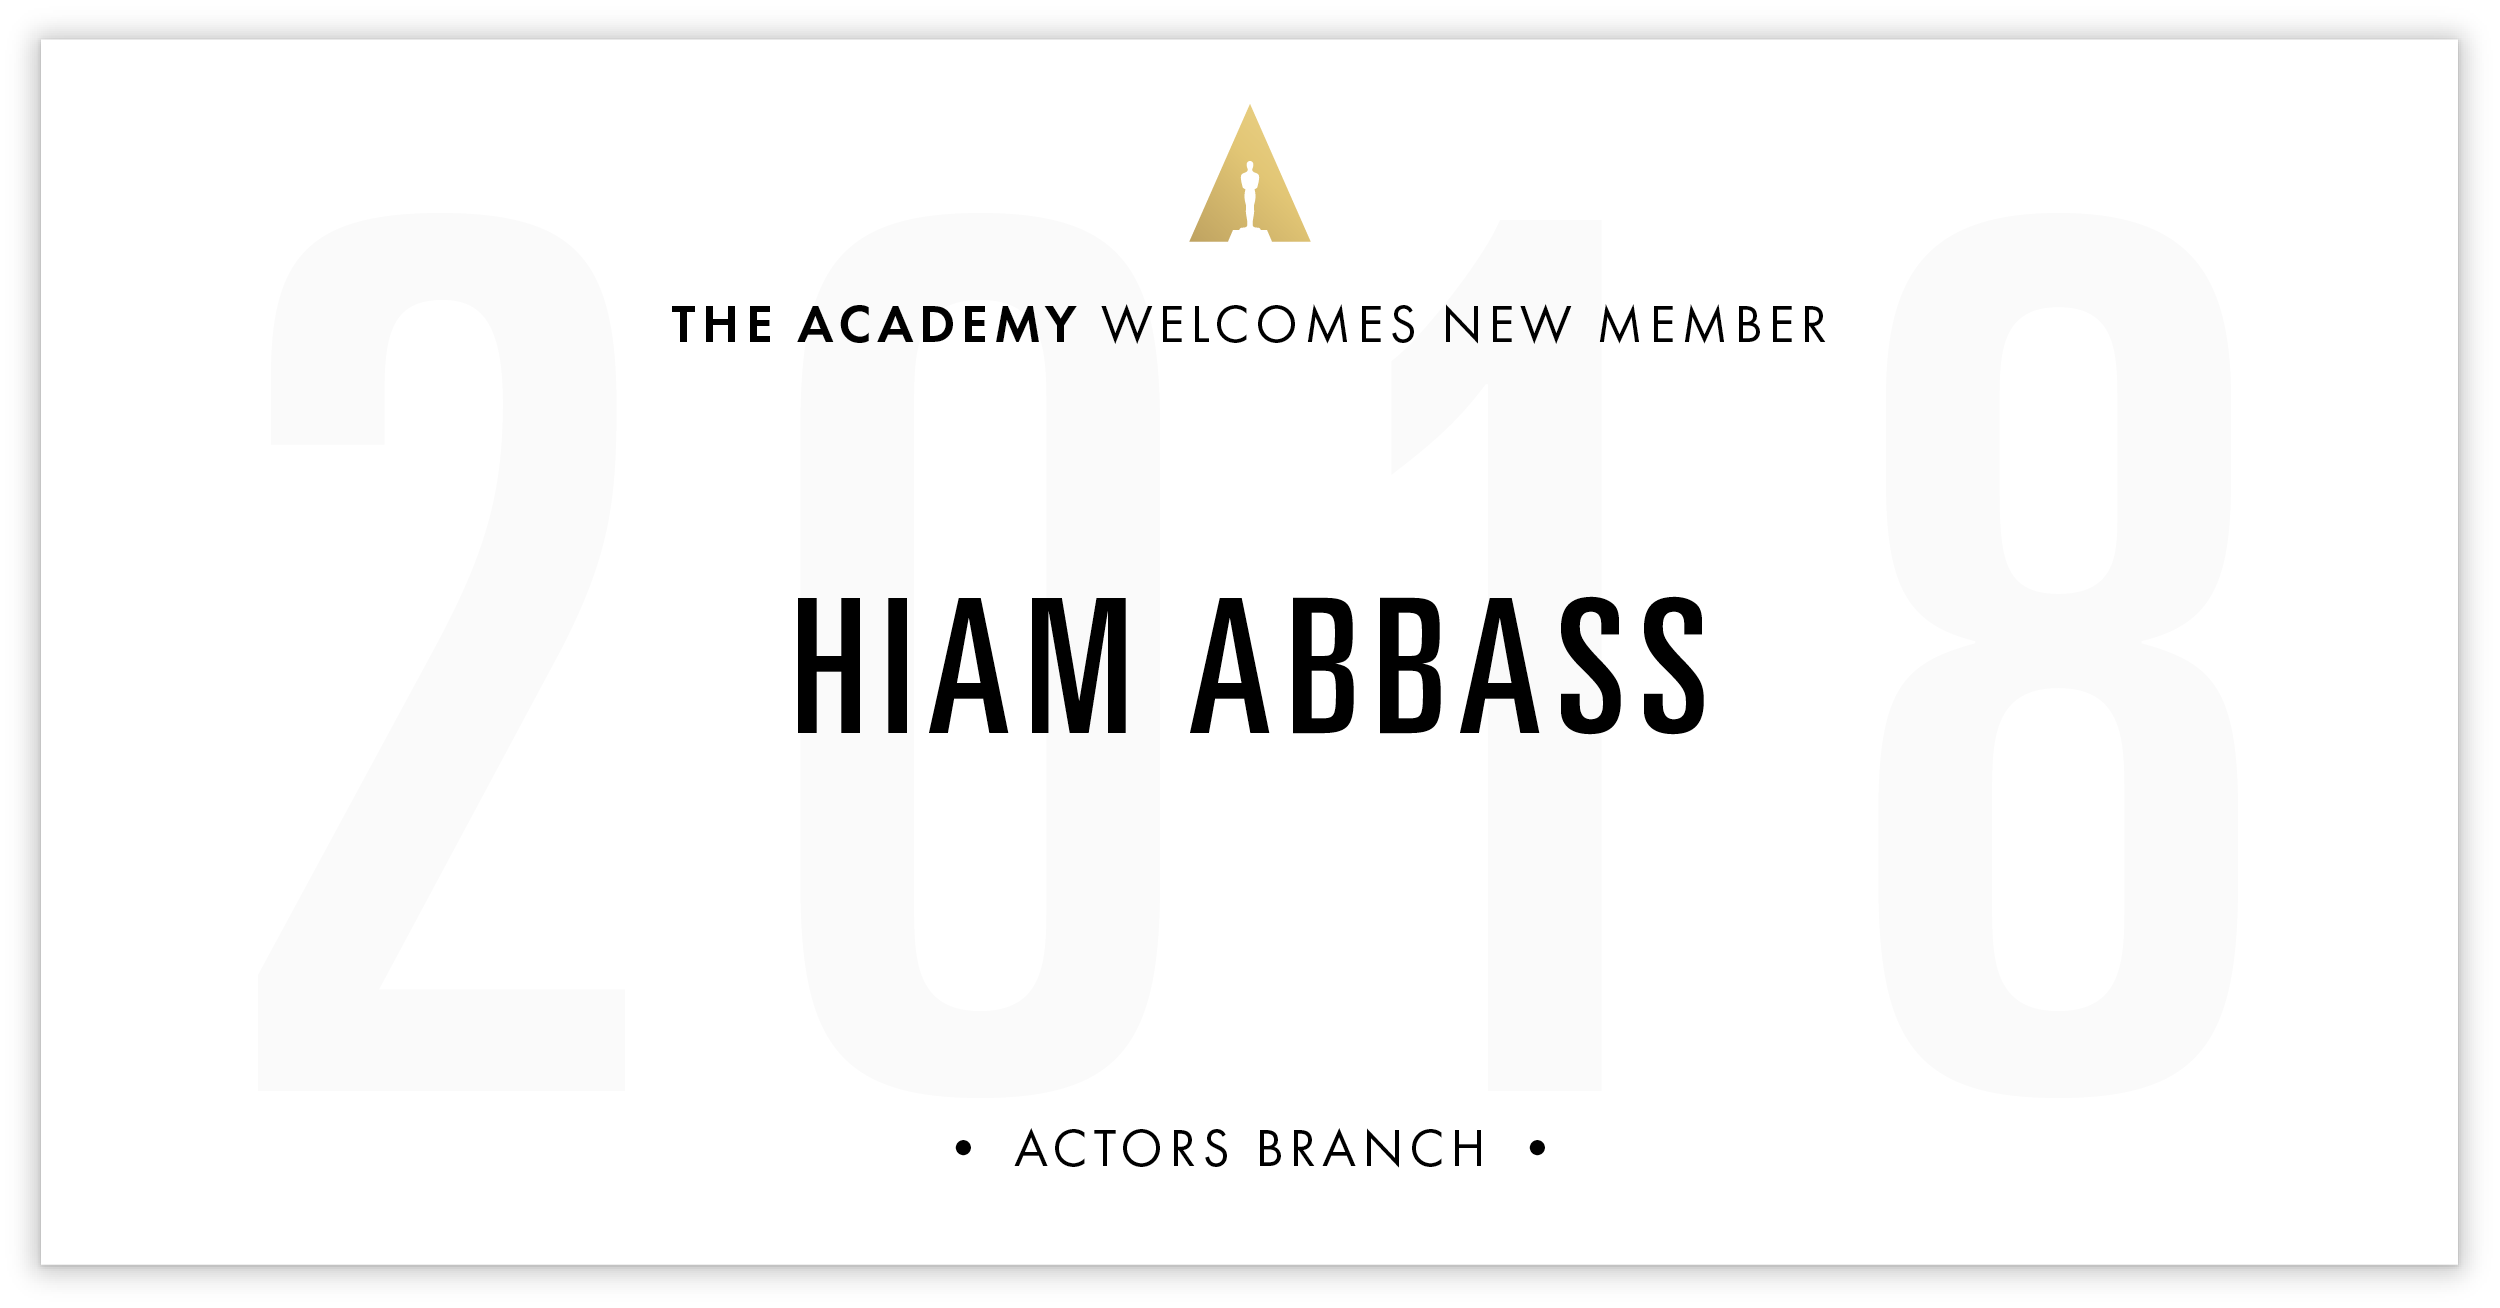 Hiam Abbass is invited!